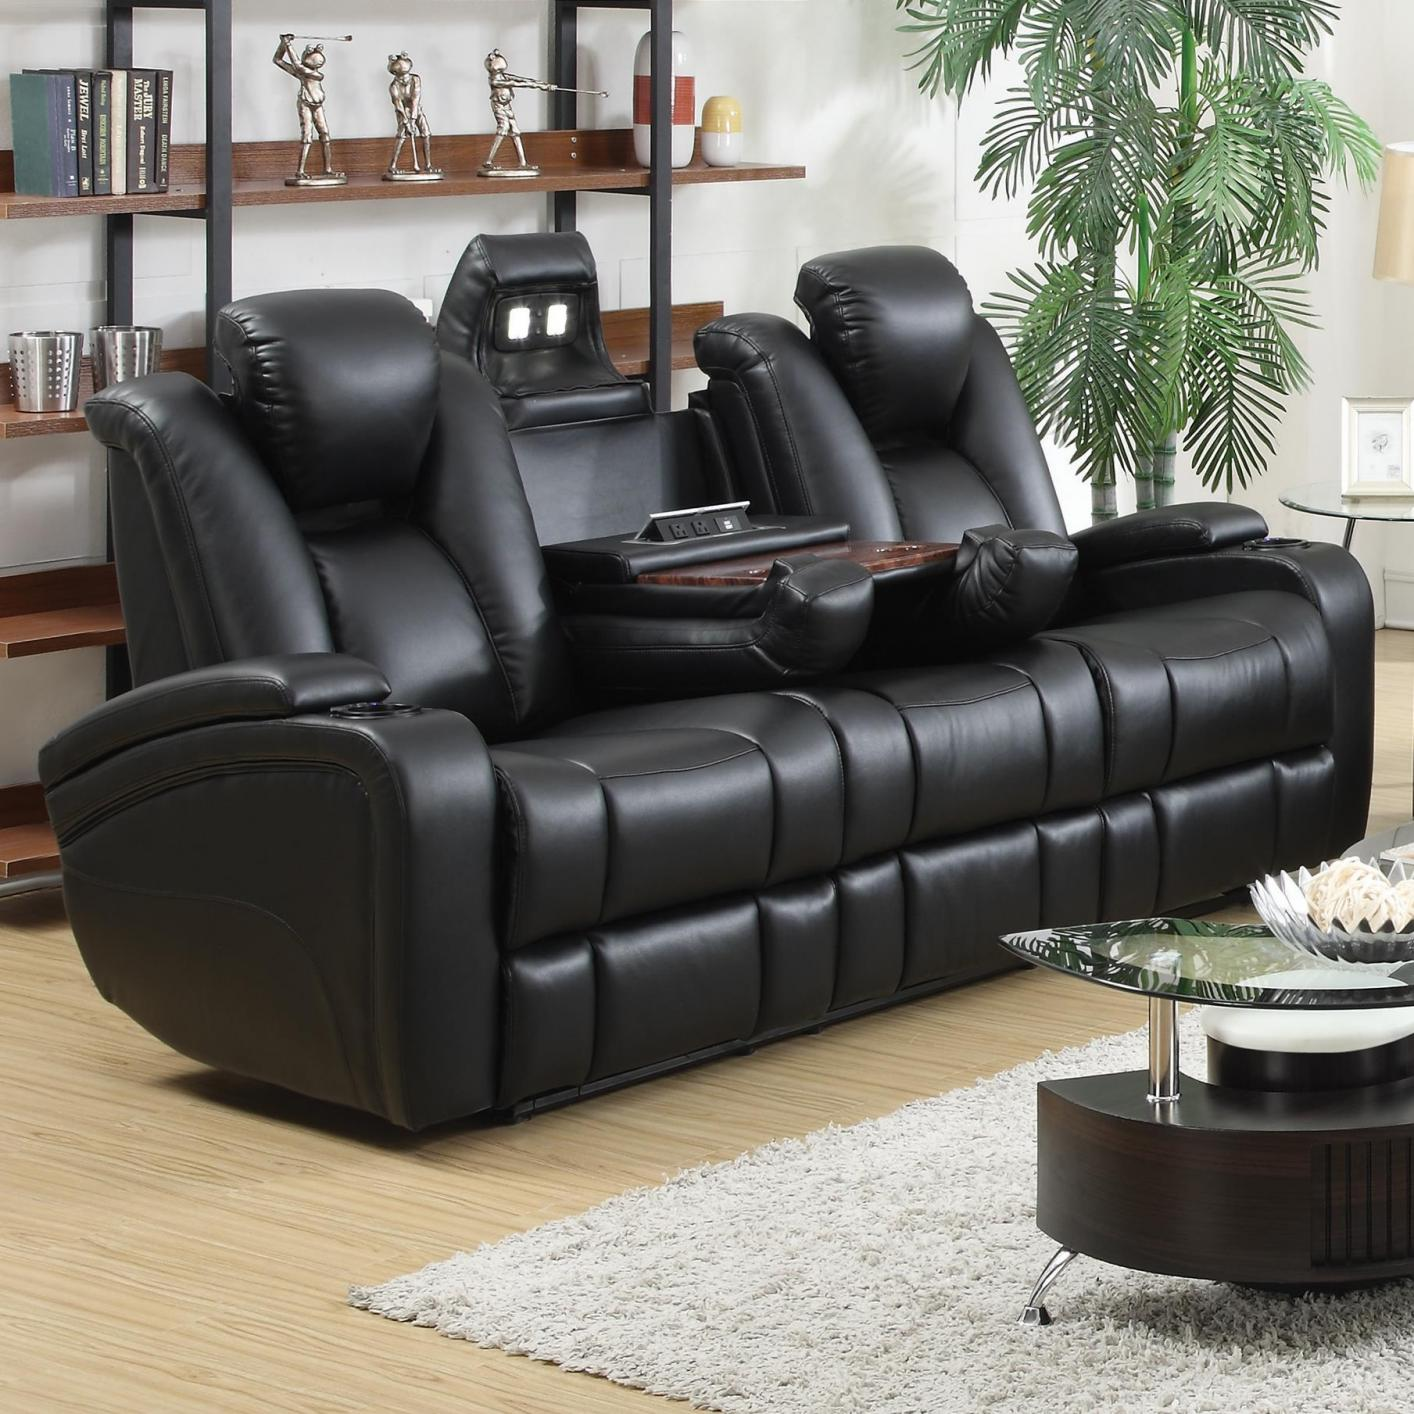 Merveilleux Black Leather Power Reclining Sofa